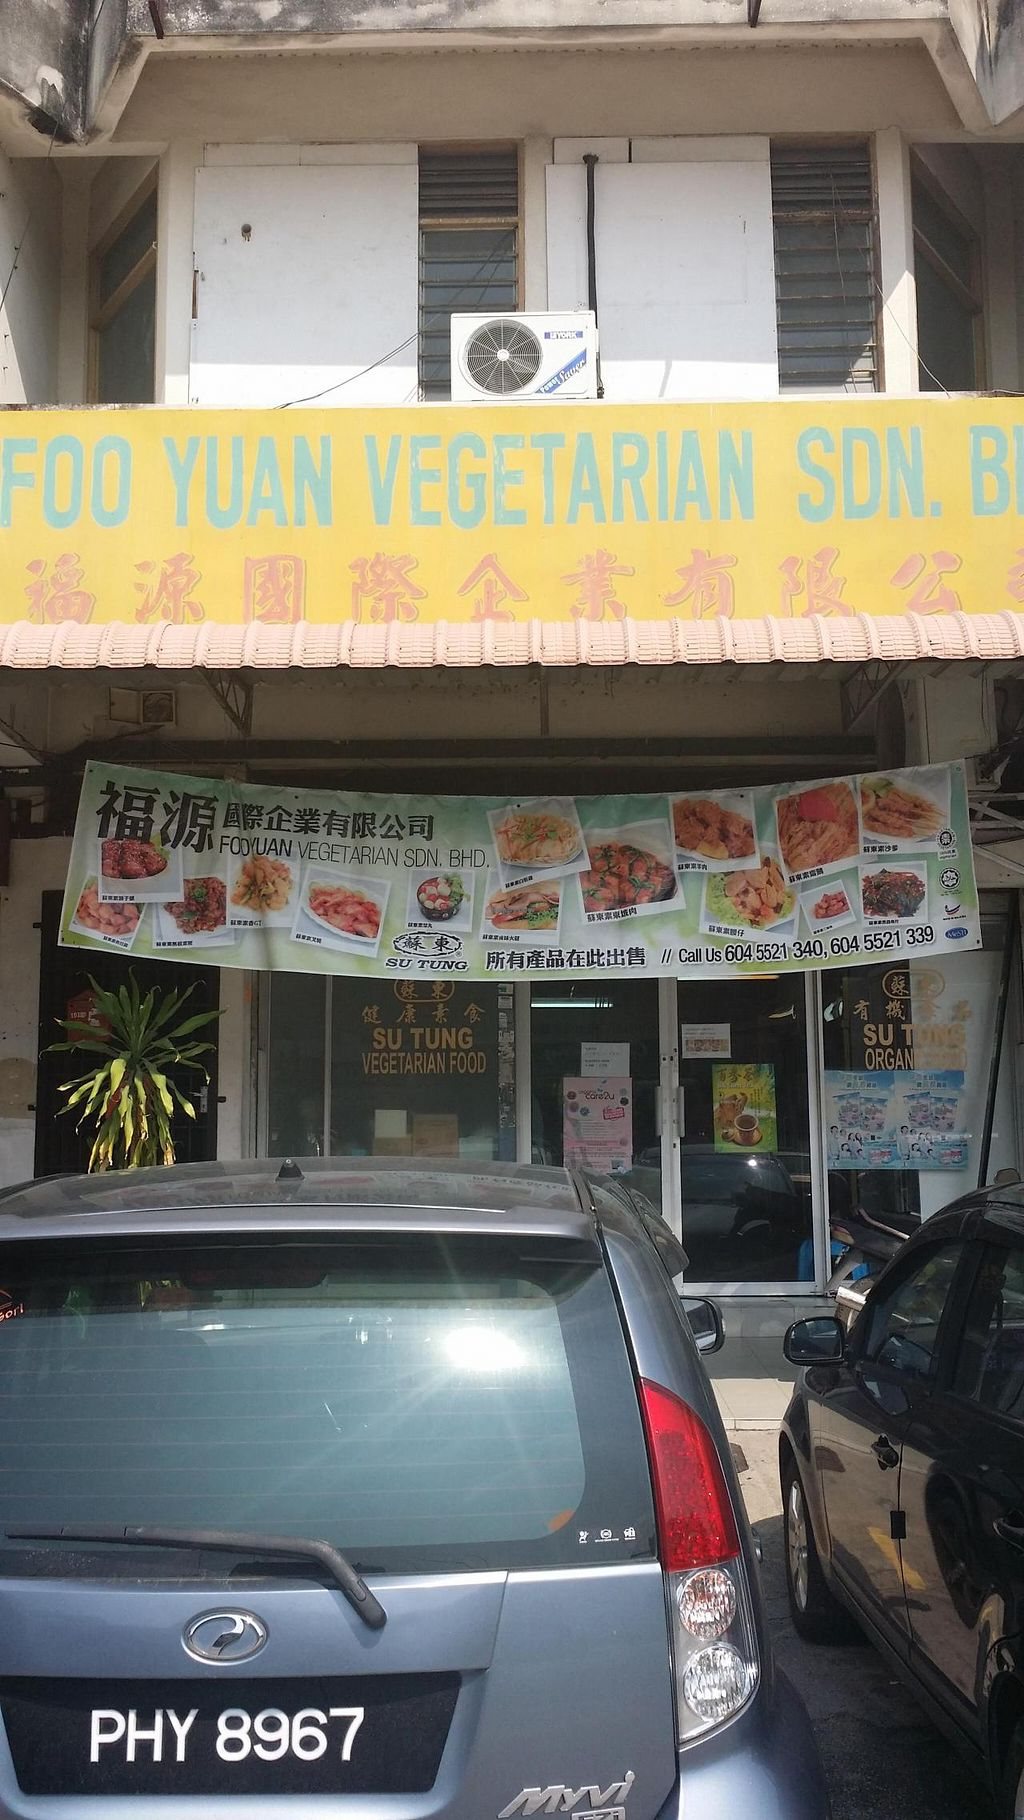 """Photo of Su Tung Vegetarian  by <a href=""""/members/profile/walter007"""">walter007</a> <br/>Shop <br/> May 5, 2014  - <a href='/contact/abuse/image/25995/69449'>Report</a>"""